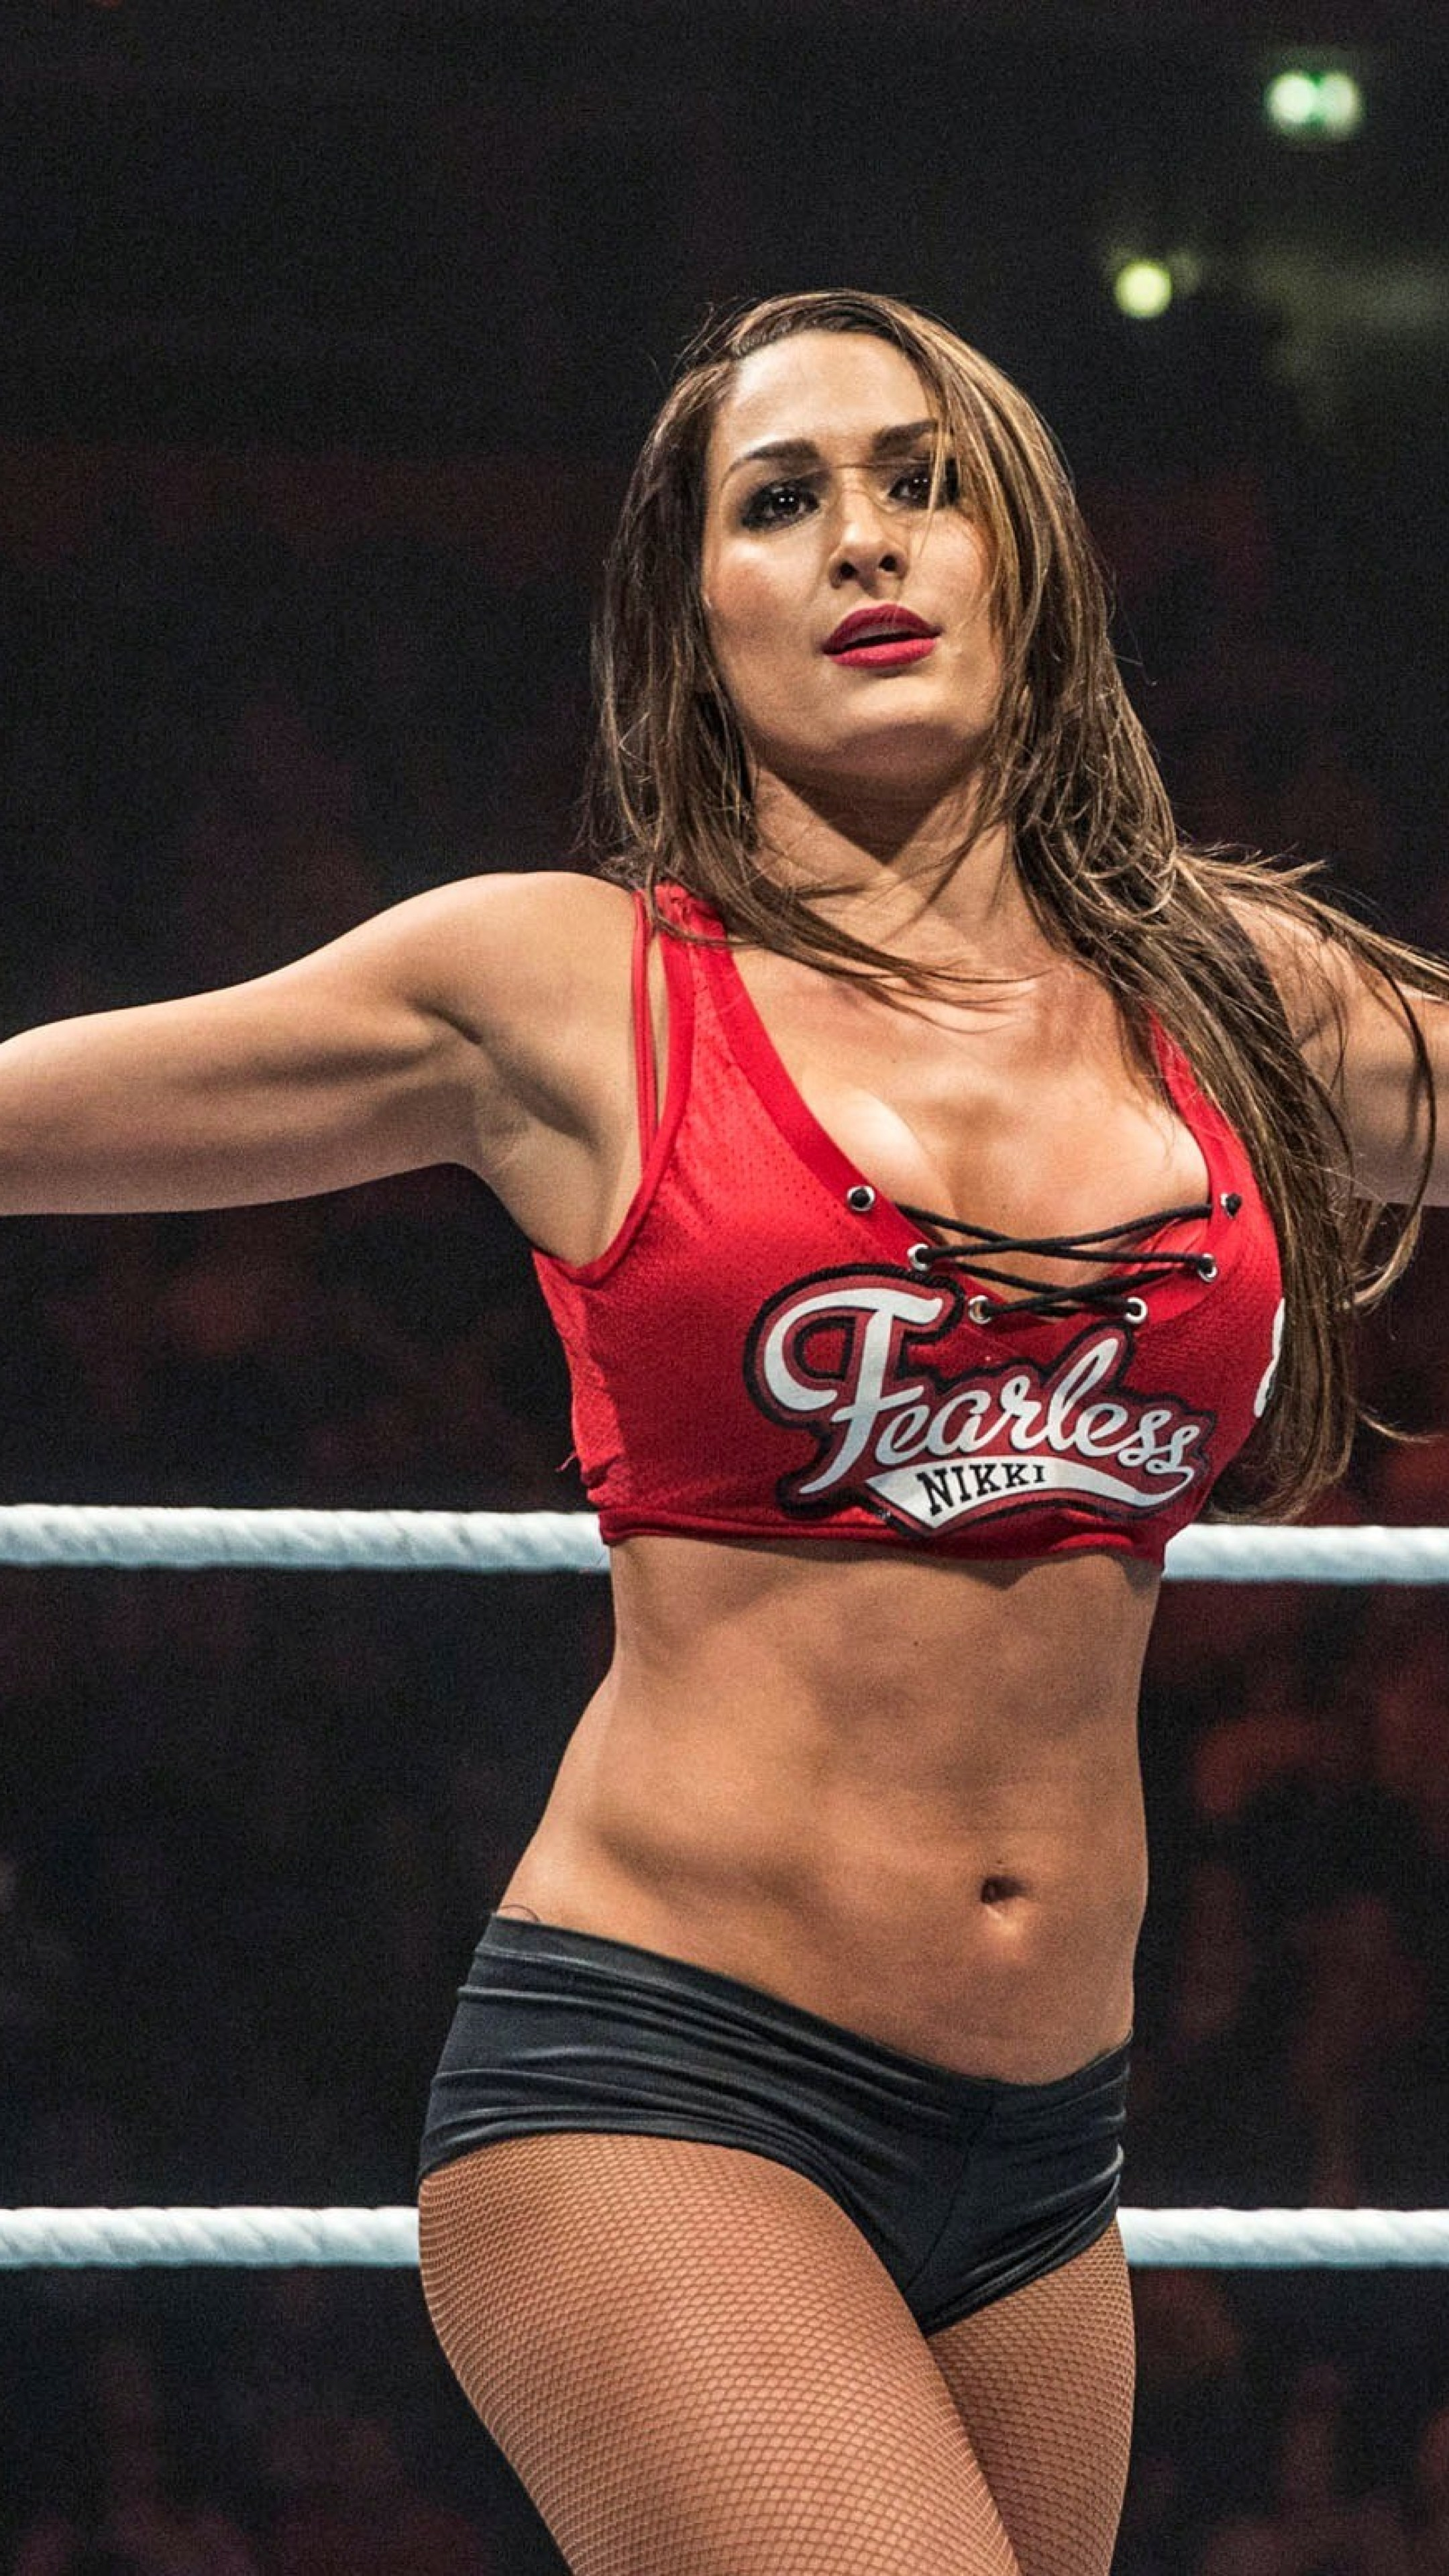 Nikki Bella nudes (88 images) Gallery, YouTube, see through